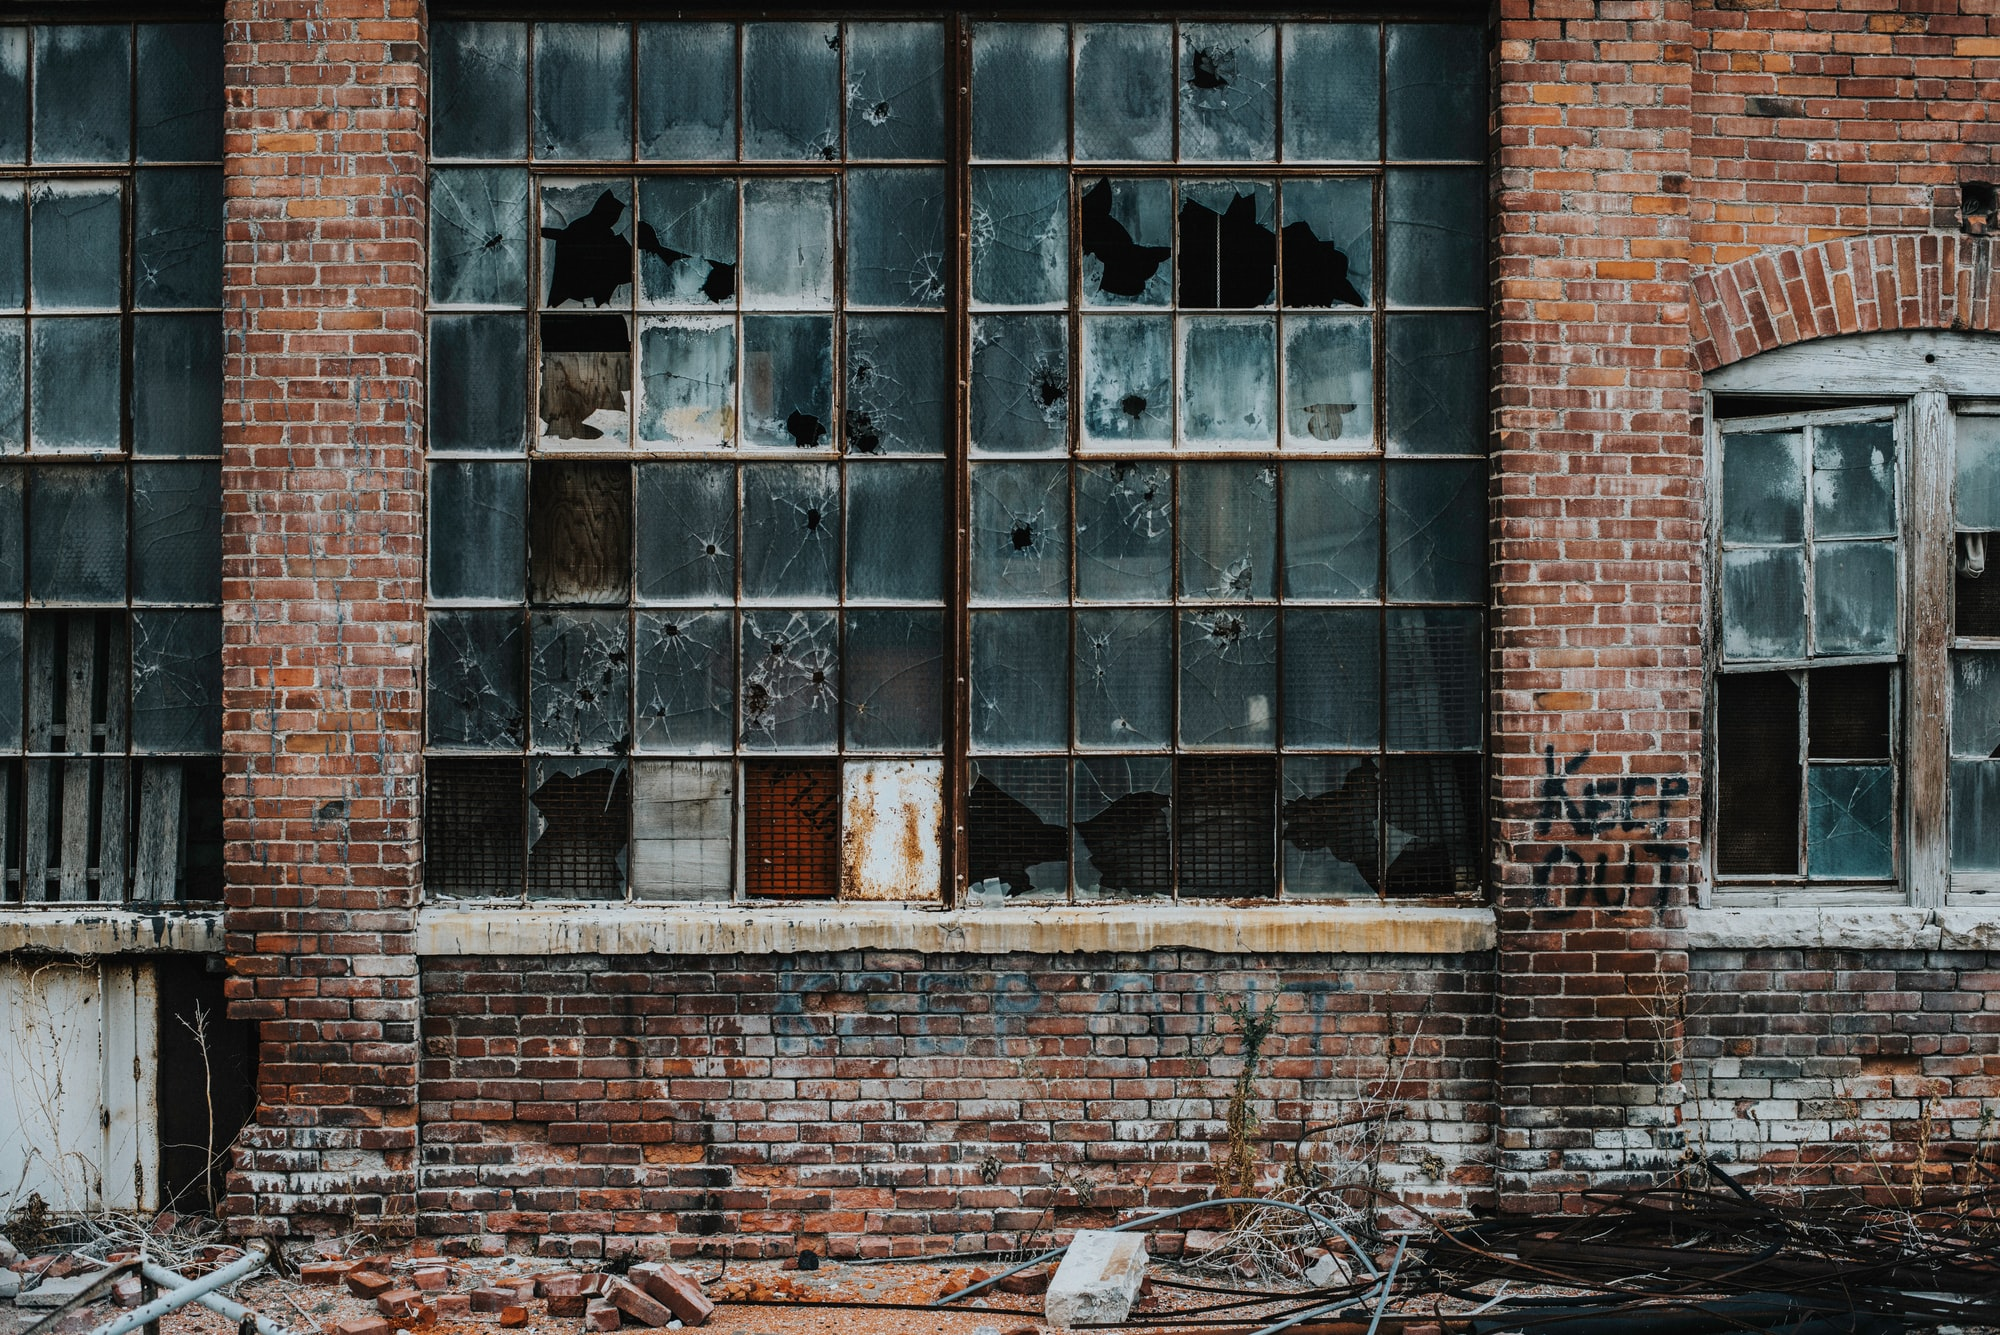 An abandoned warehouse located in Loveland, Colorado.